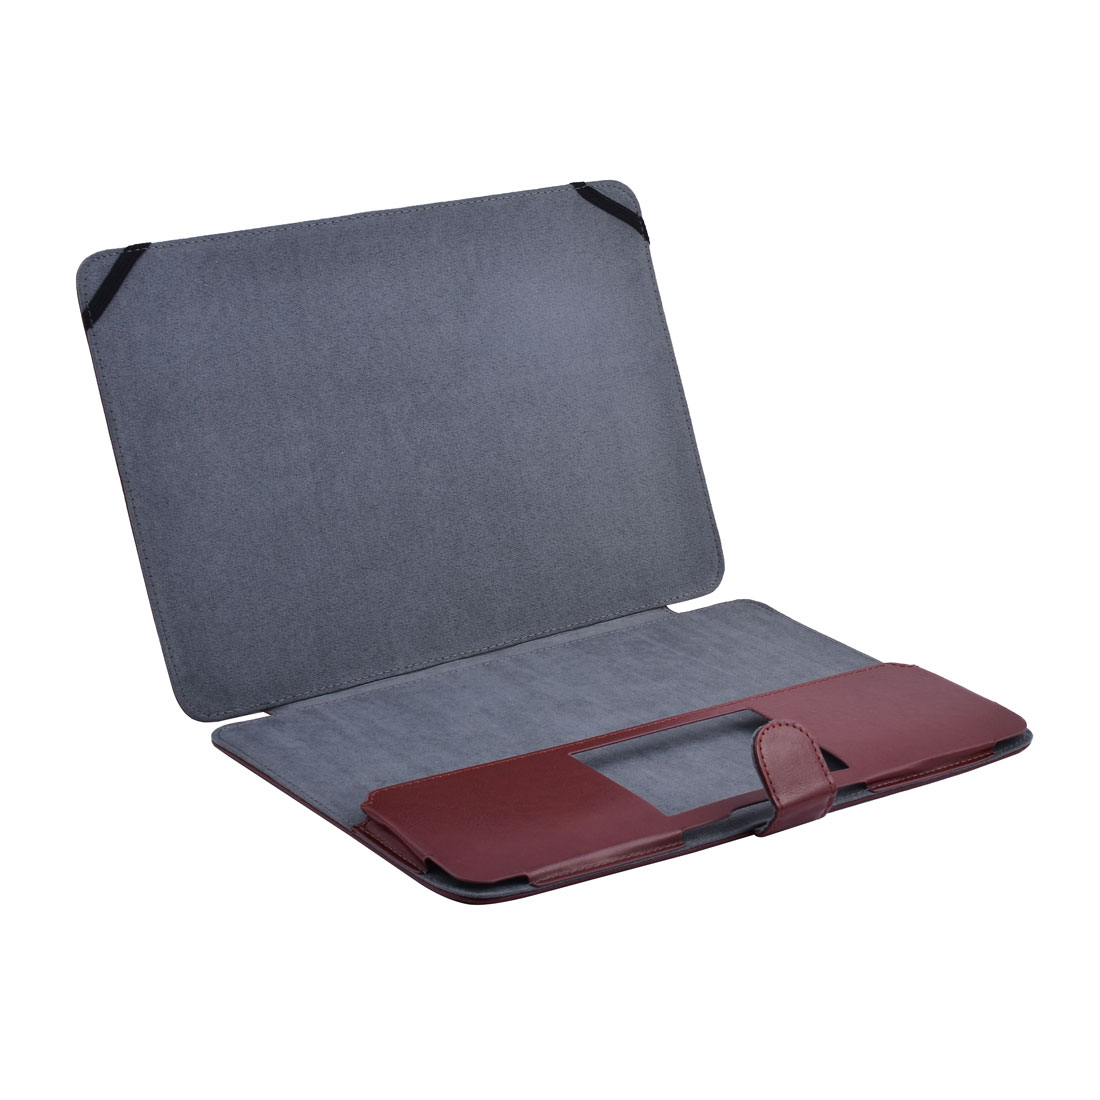 Laptop PU Leather Clip On Sleeve Book Cover Carmine for Macbook Air 11.6 Inch